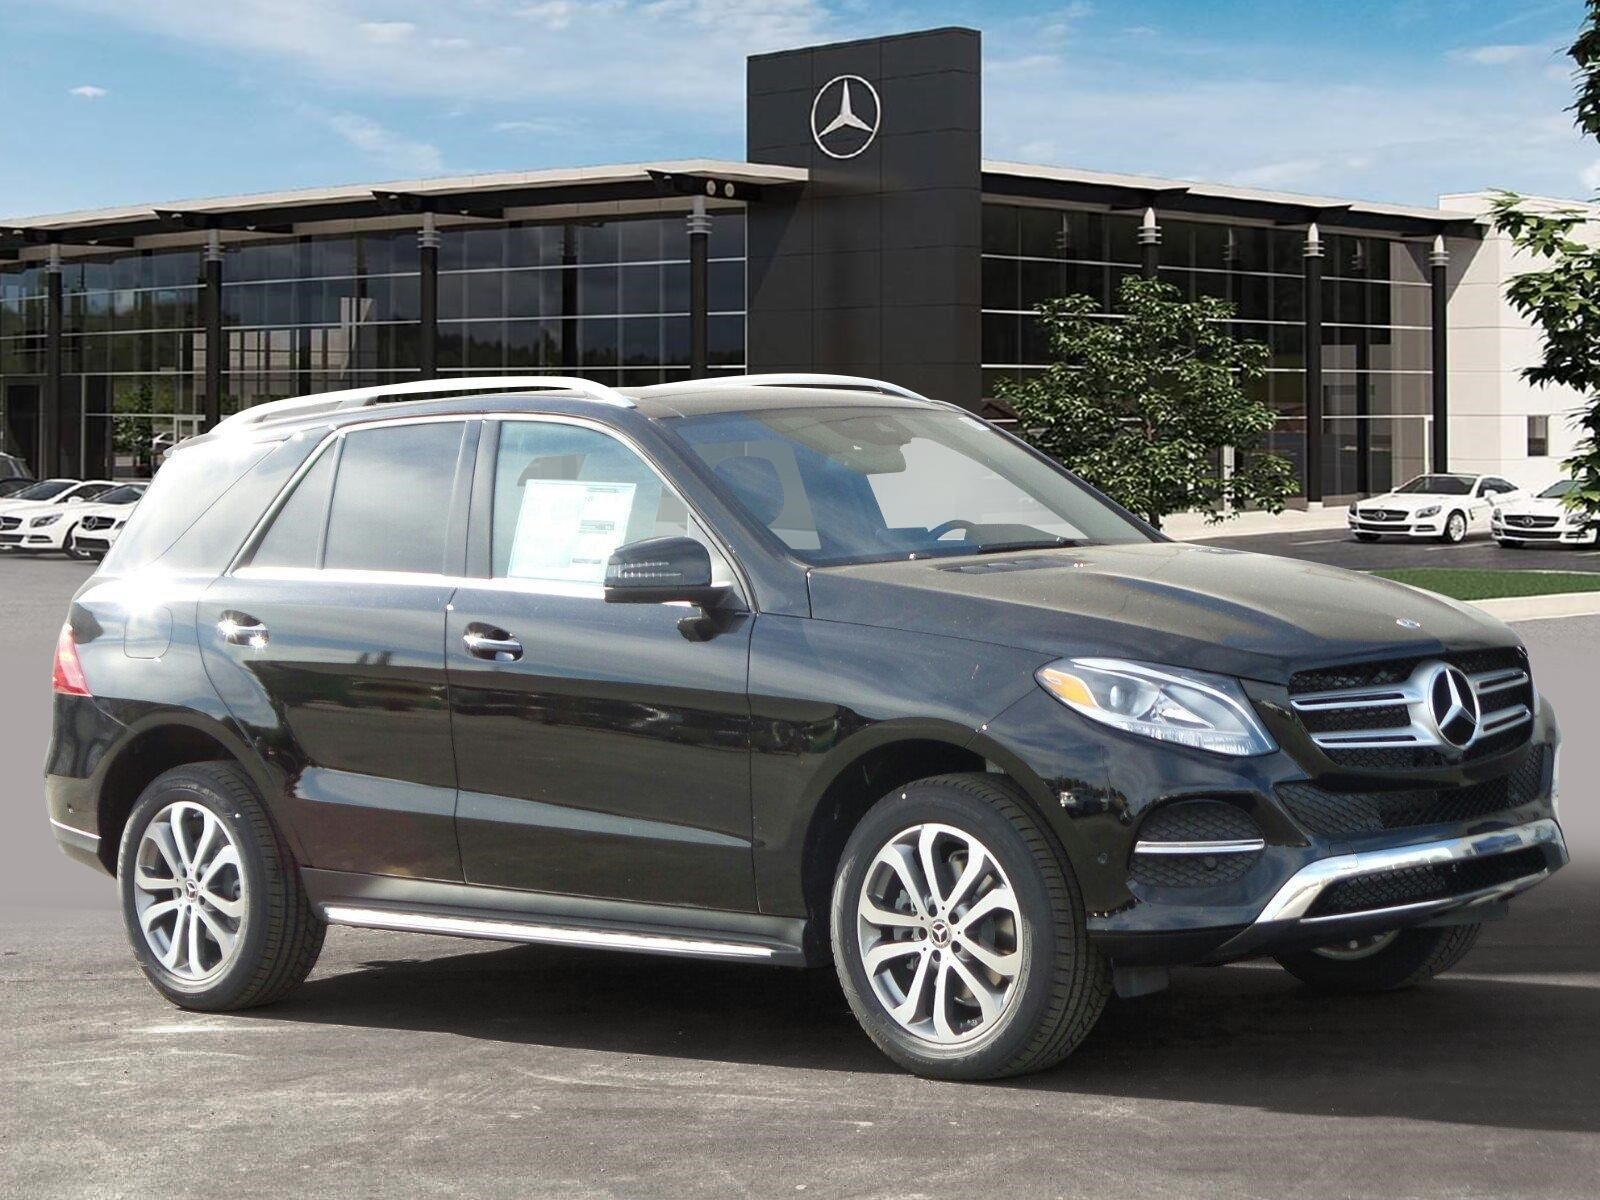 greenland benz gle vehicle mercedes suv nh id used image details